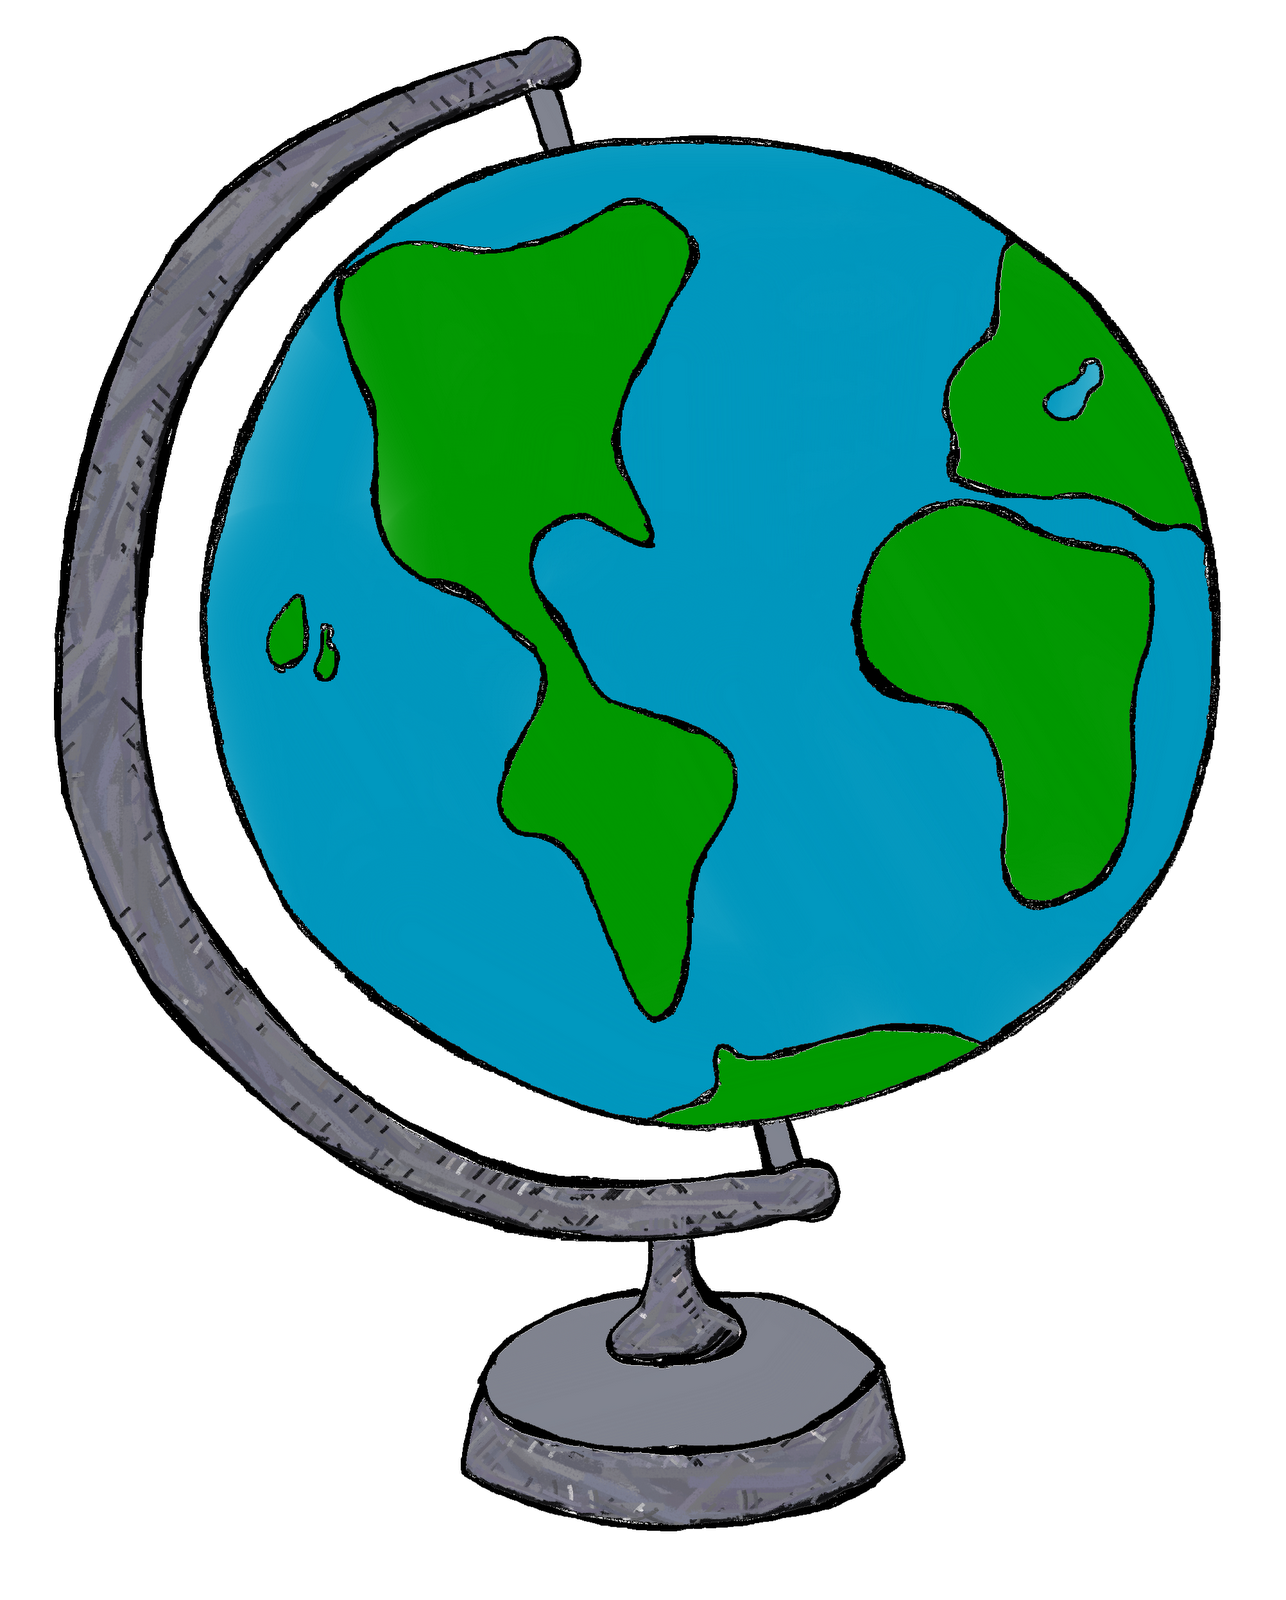 Clipart Globe - Cliparts.co